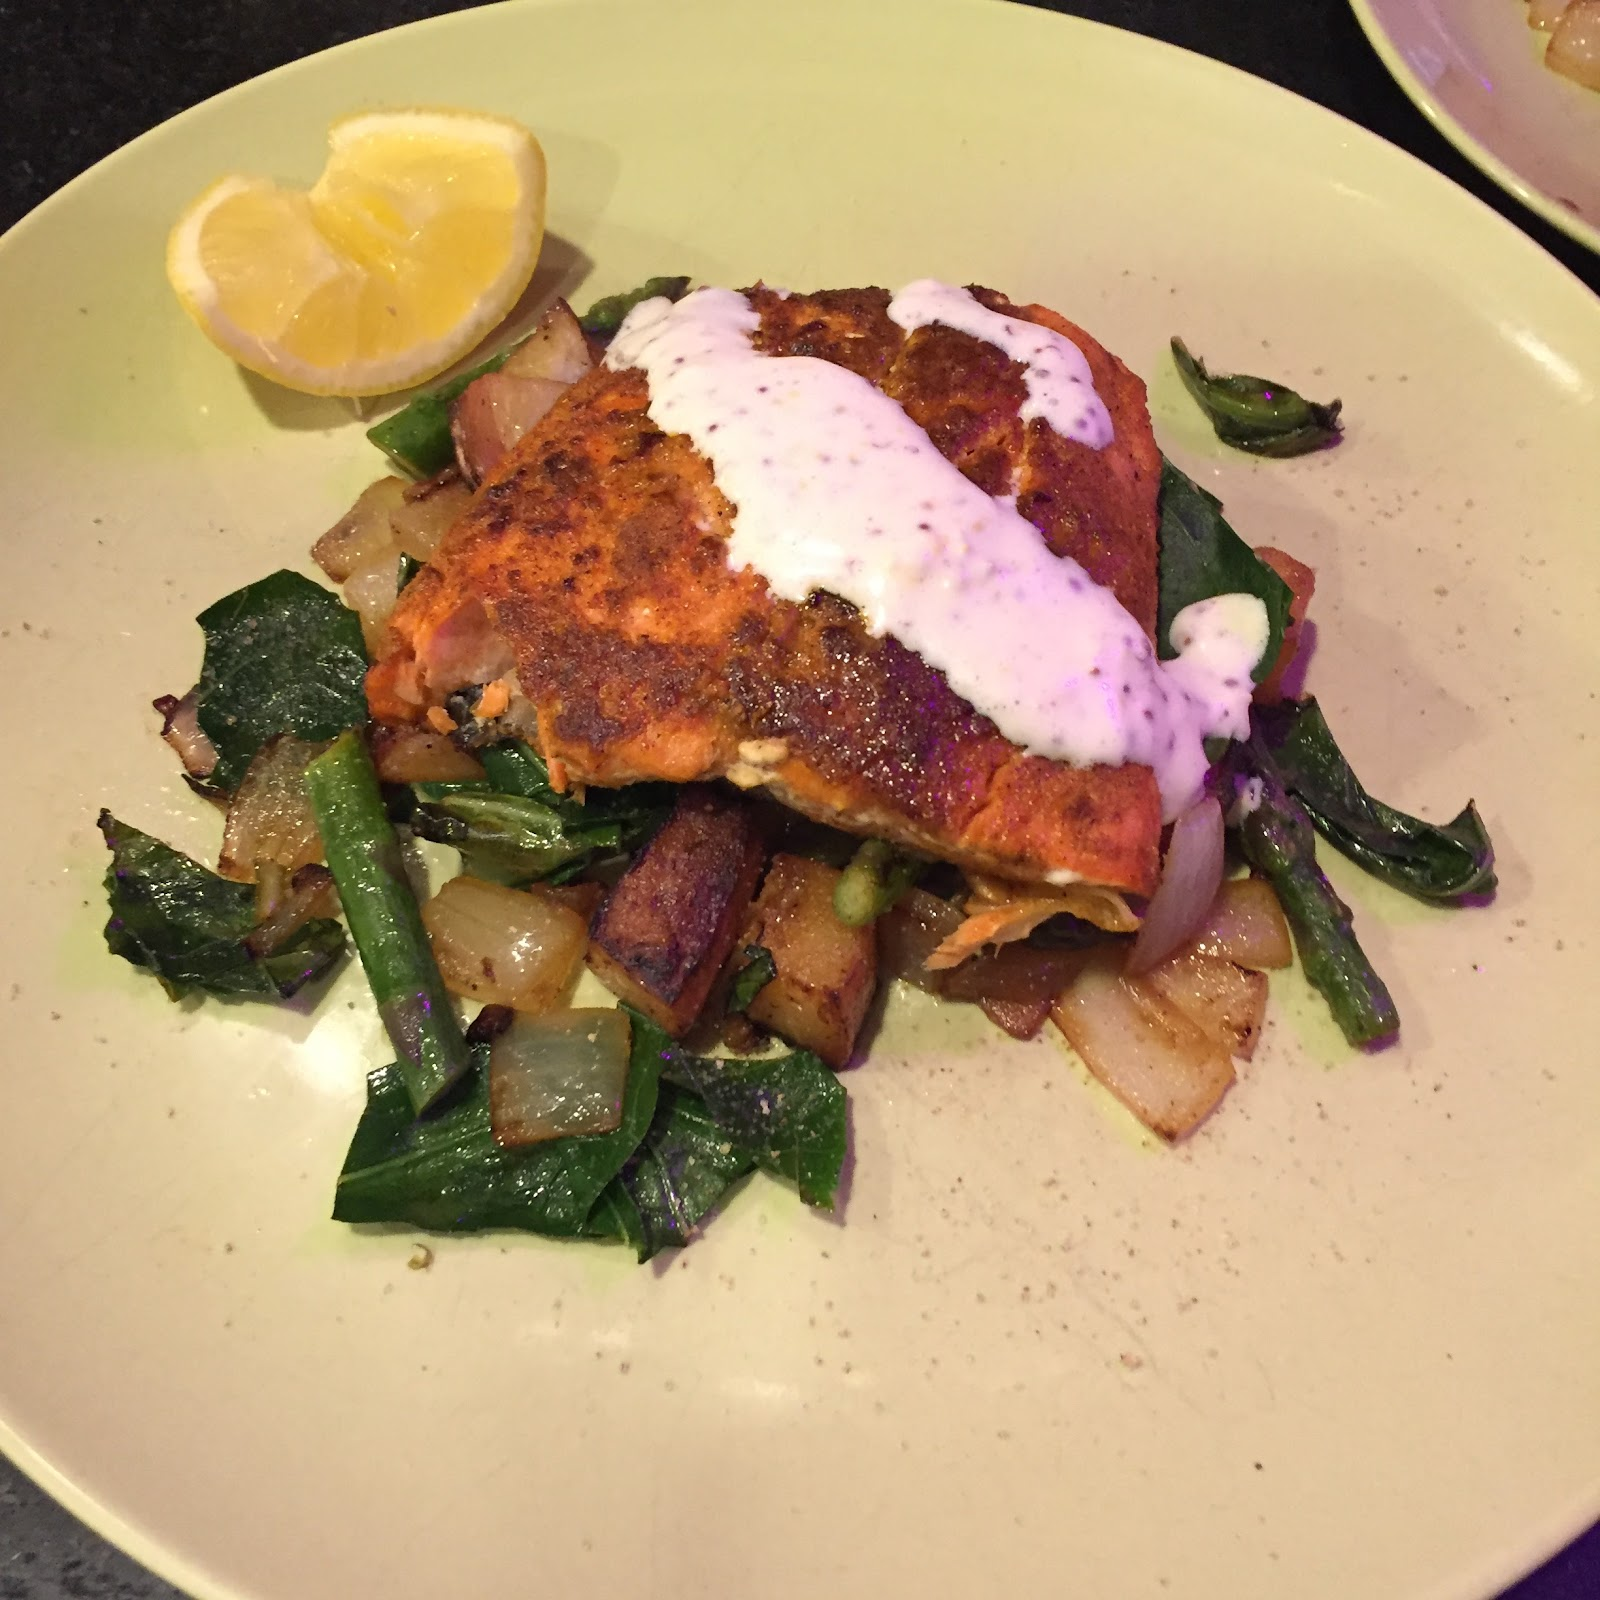 Blue apron spinach pizza - Seared Salmon And Lemon Aoli With Red Potatoes Asparagus And Collard Green Hash Blue Apron Wednesday Pizza